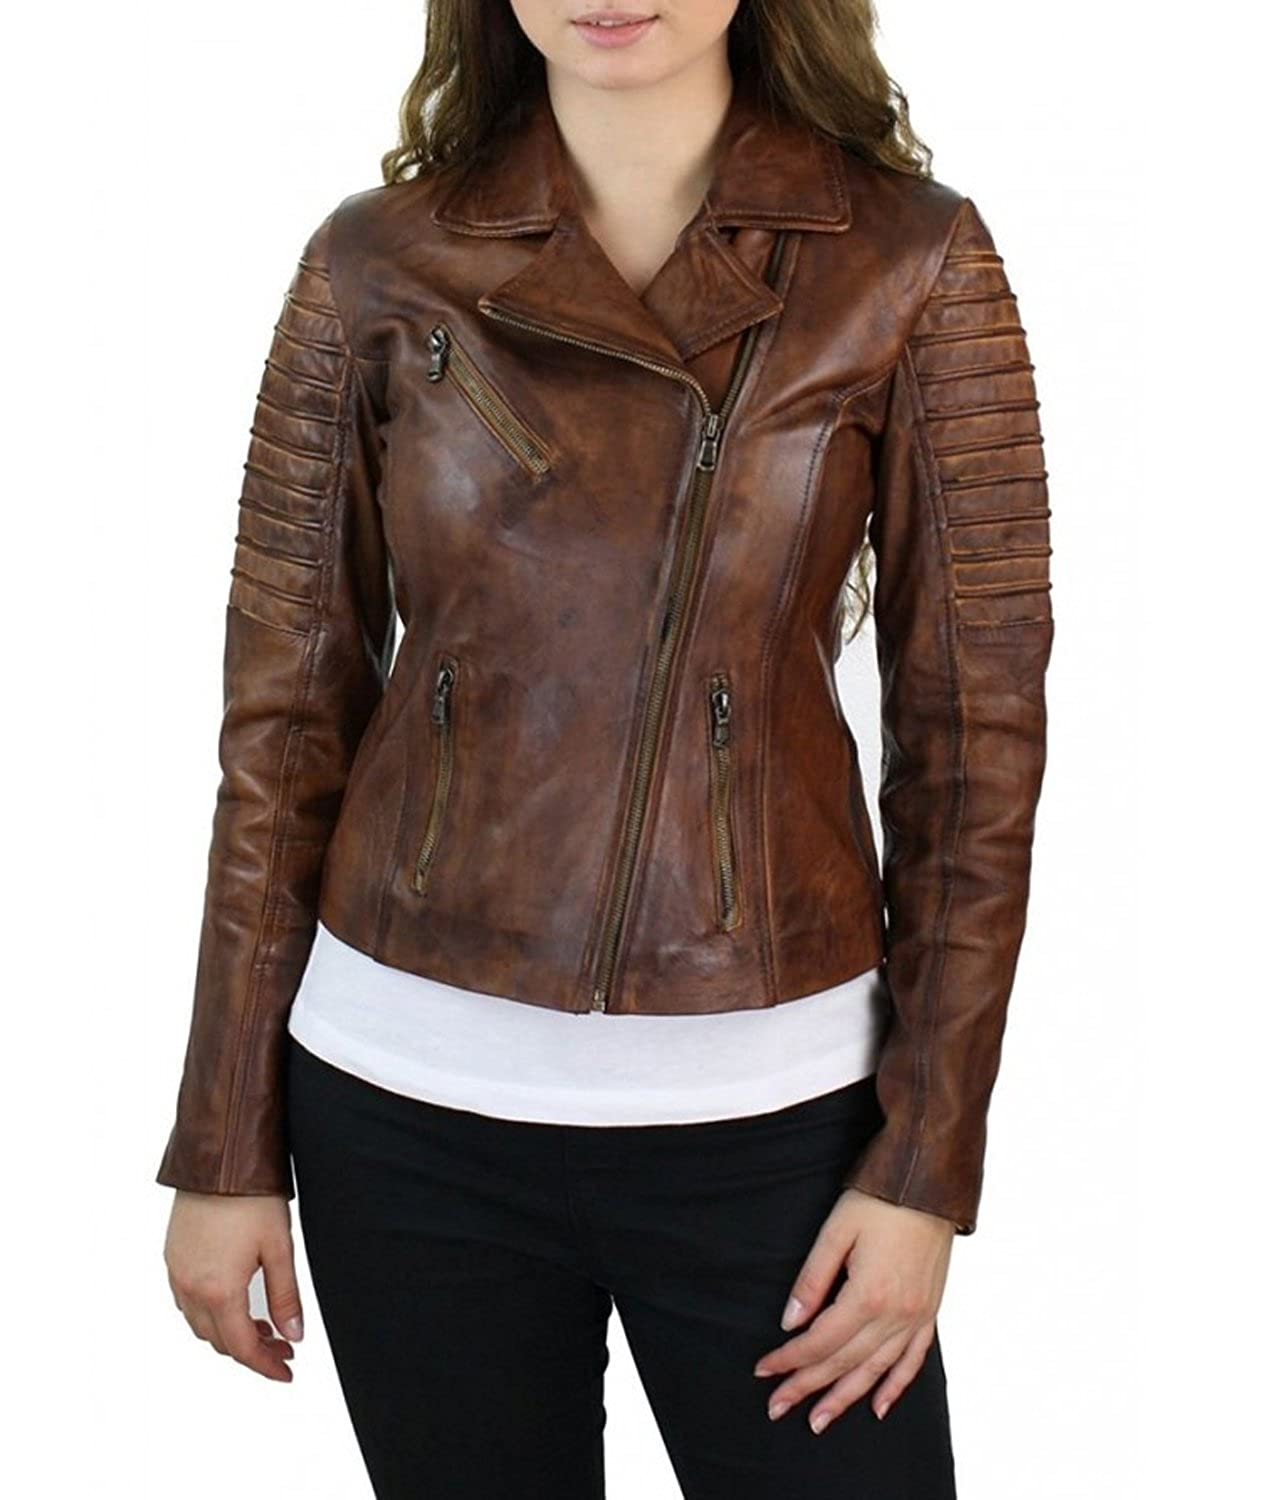 8ae123b756cfe ... amazing jacket that you can attire comfortably. It is available in  brown color that will give you an appealing look. It is made up of genuine  leather ...